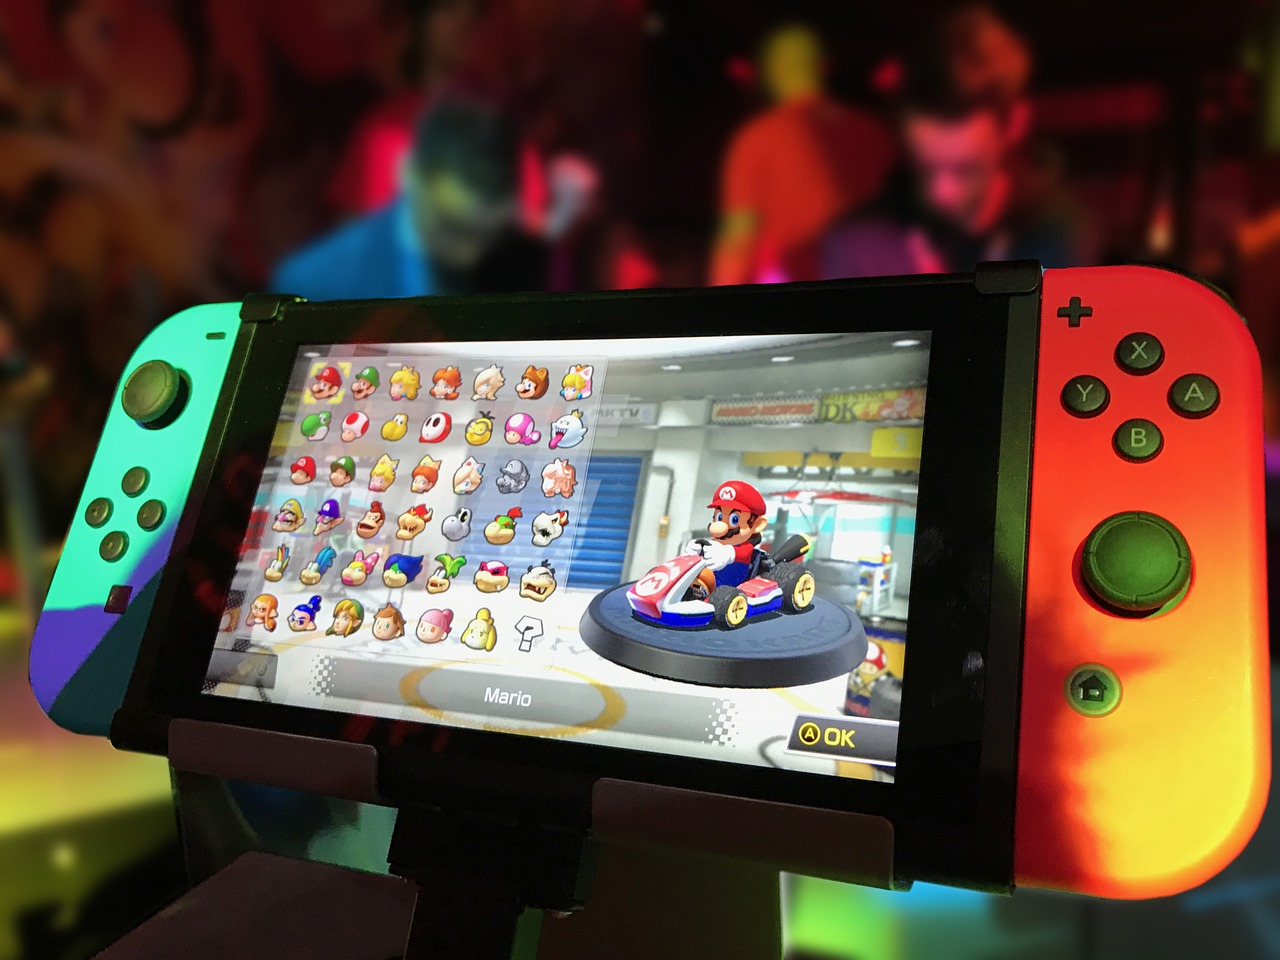 Top 5 Awesome Techie Gifts for your Loved Ones and More, nintendo switch